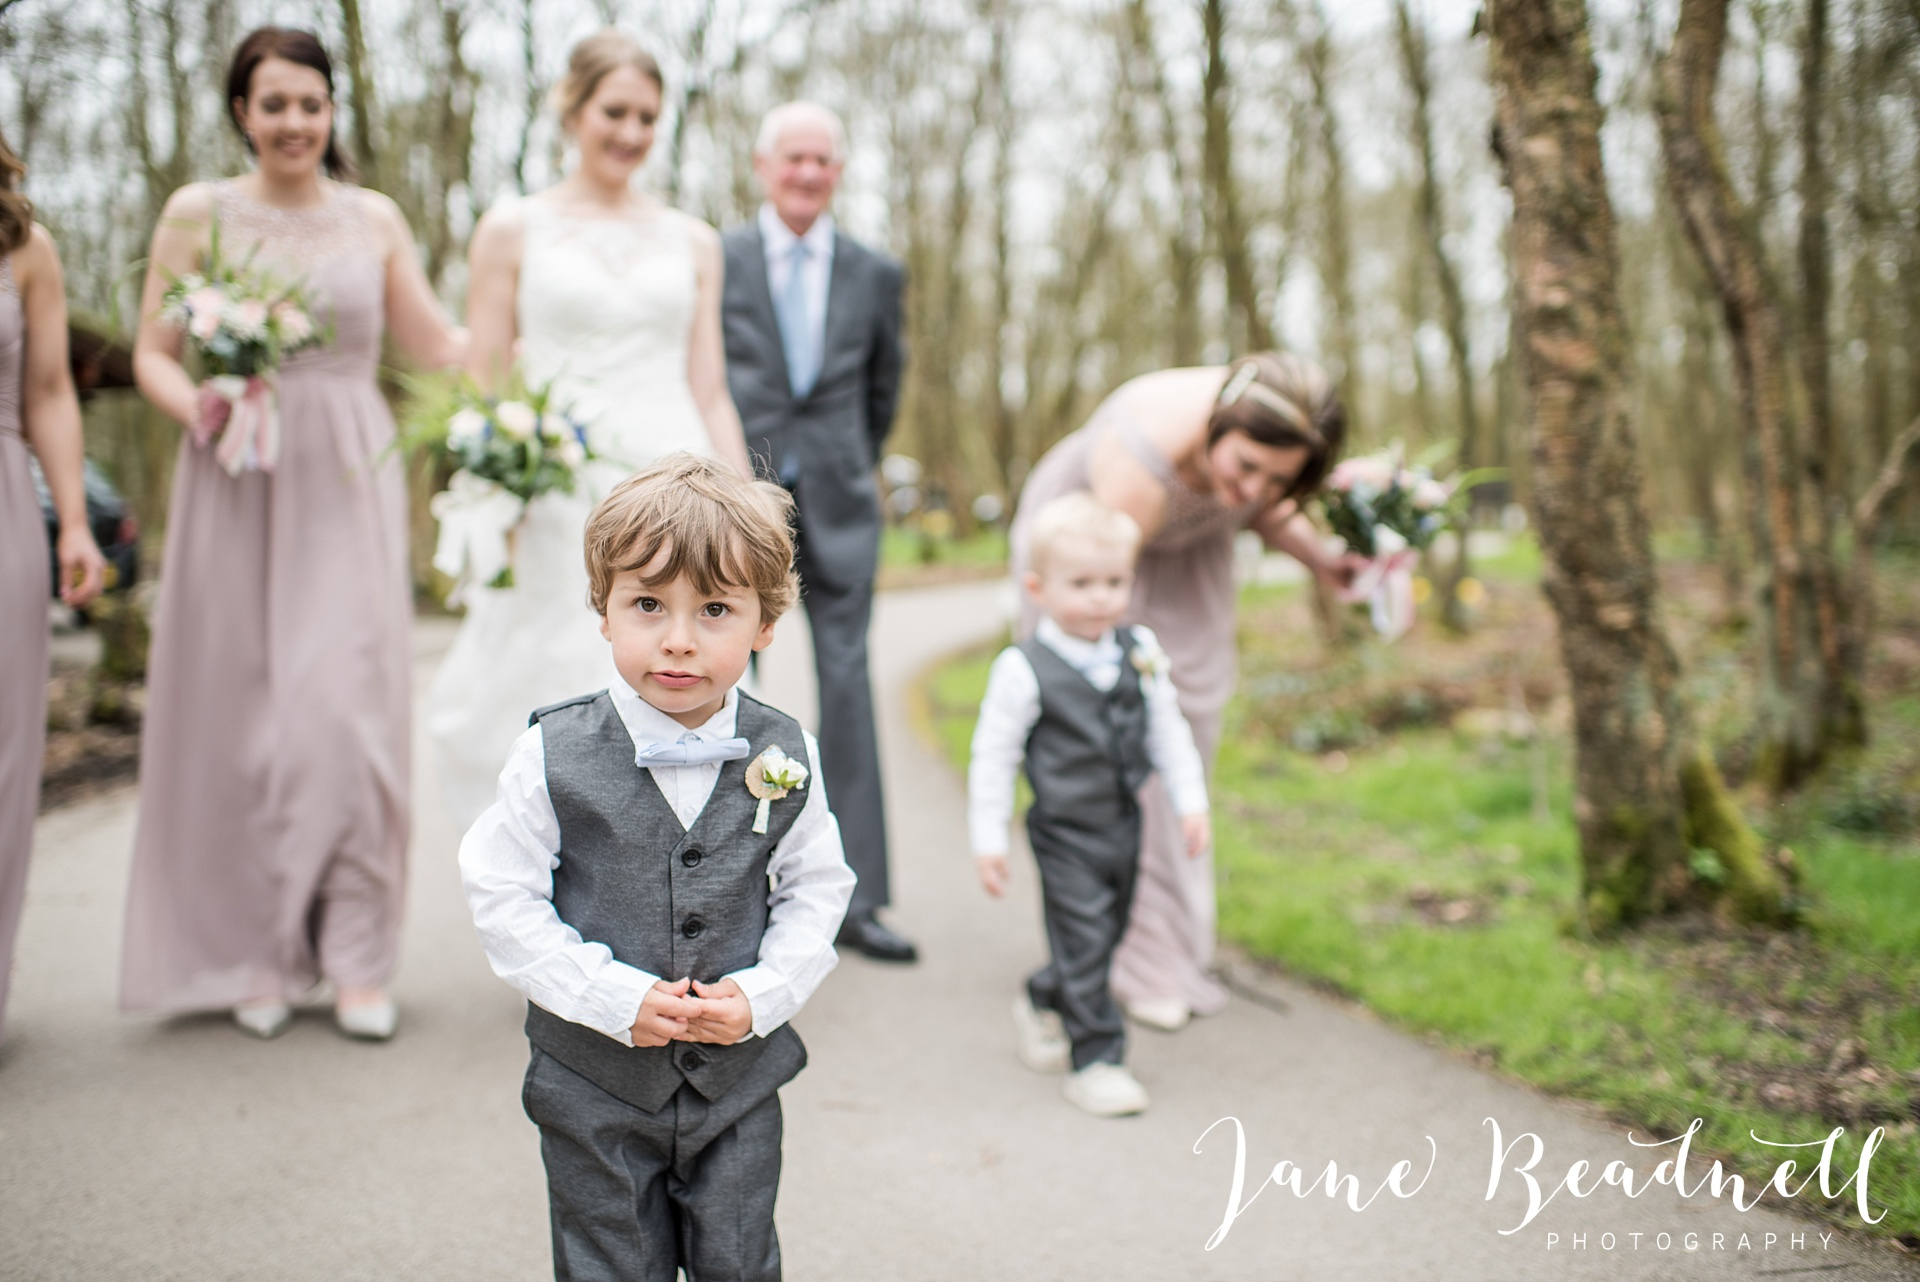 Otley Chevin Lodge wedding photography by Jane Beadnell Photography Leeds_0037